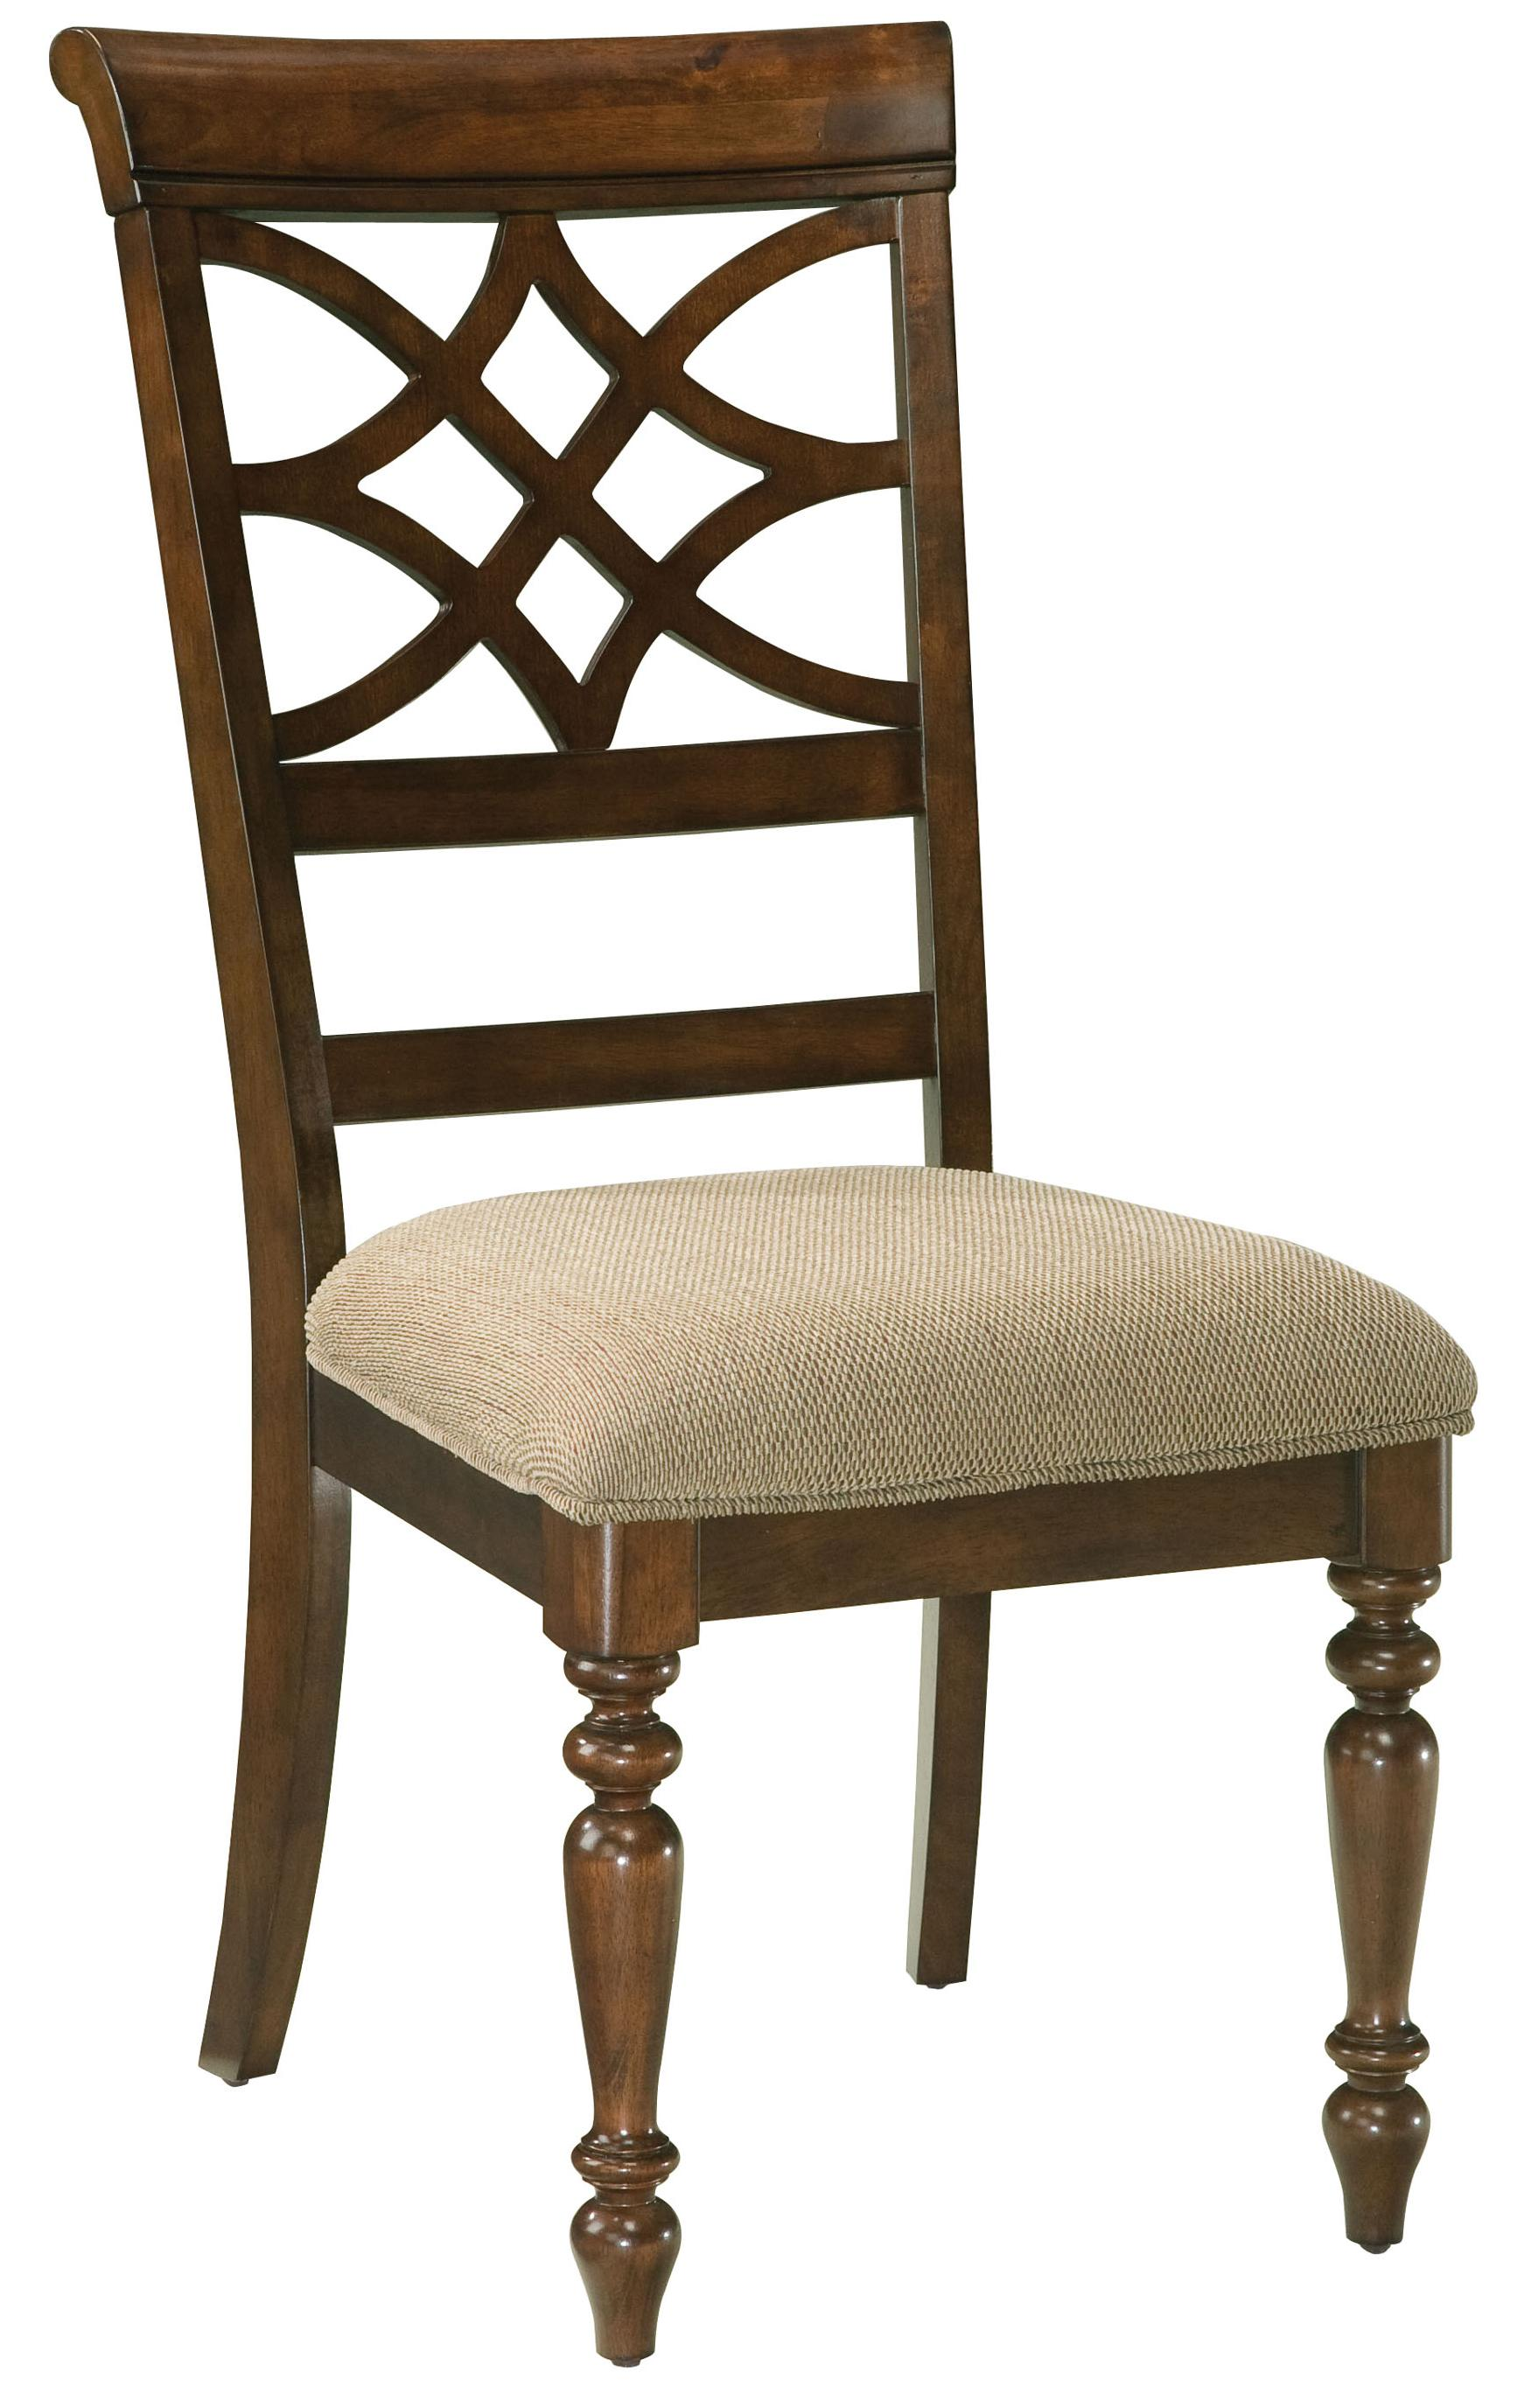 Standard furniture woodmont 19184 upholstered side chair for Upholstered dining chairs with black legs